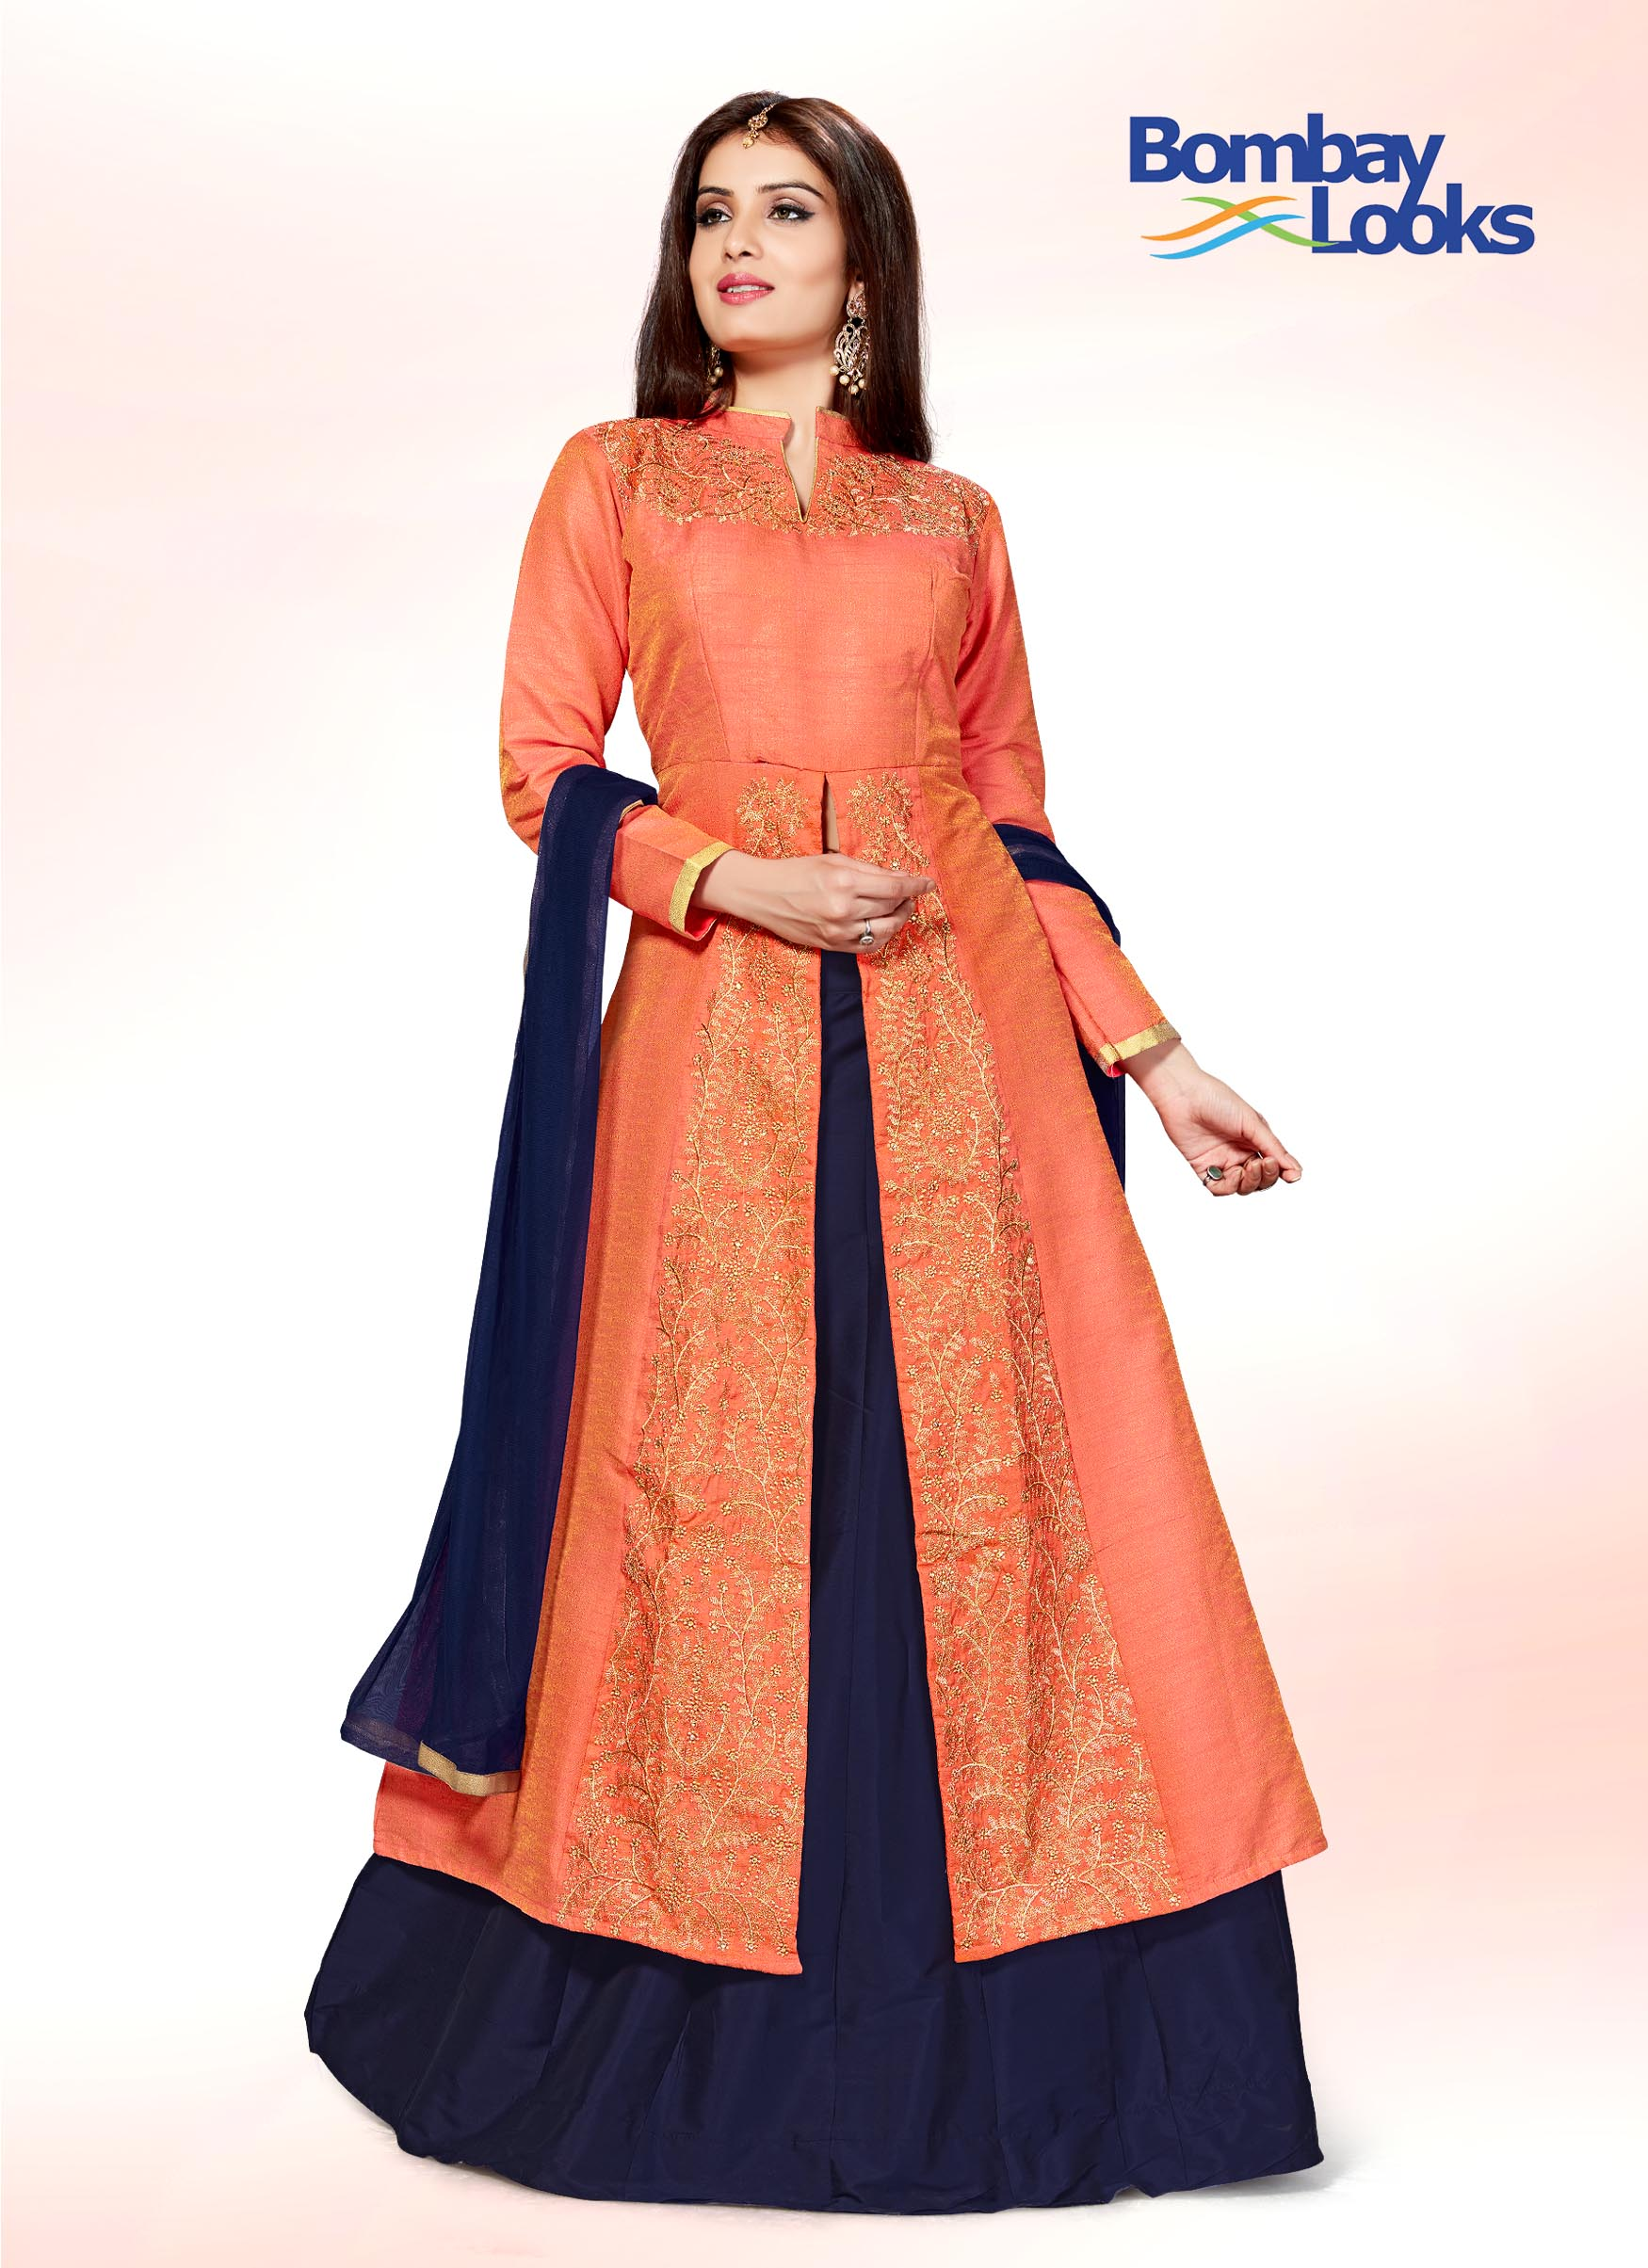 Orange suit set with navy blue skirt